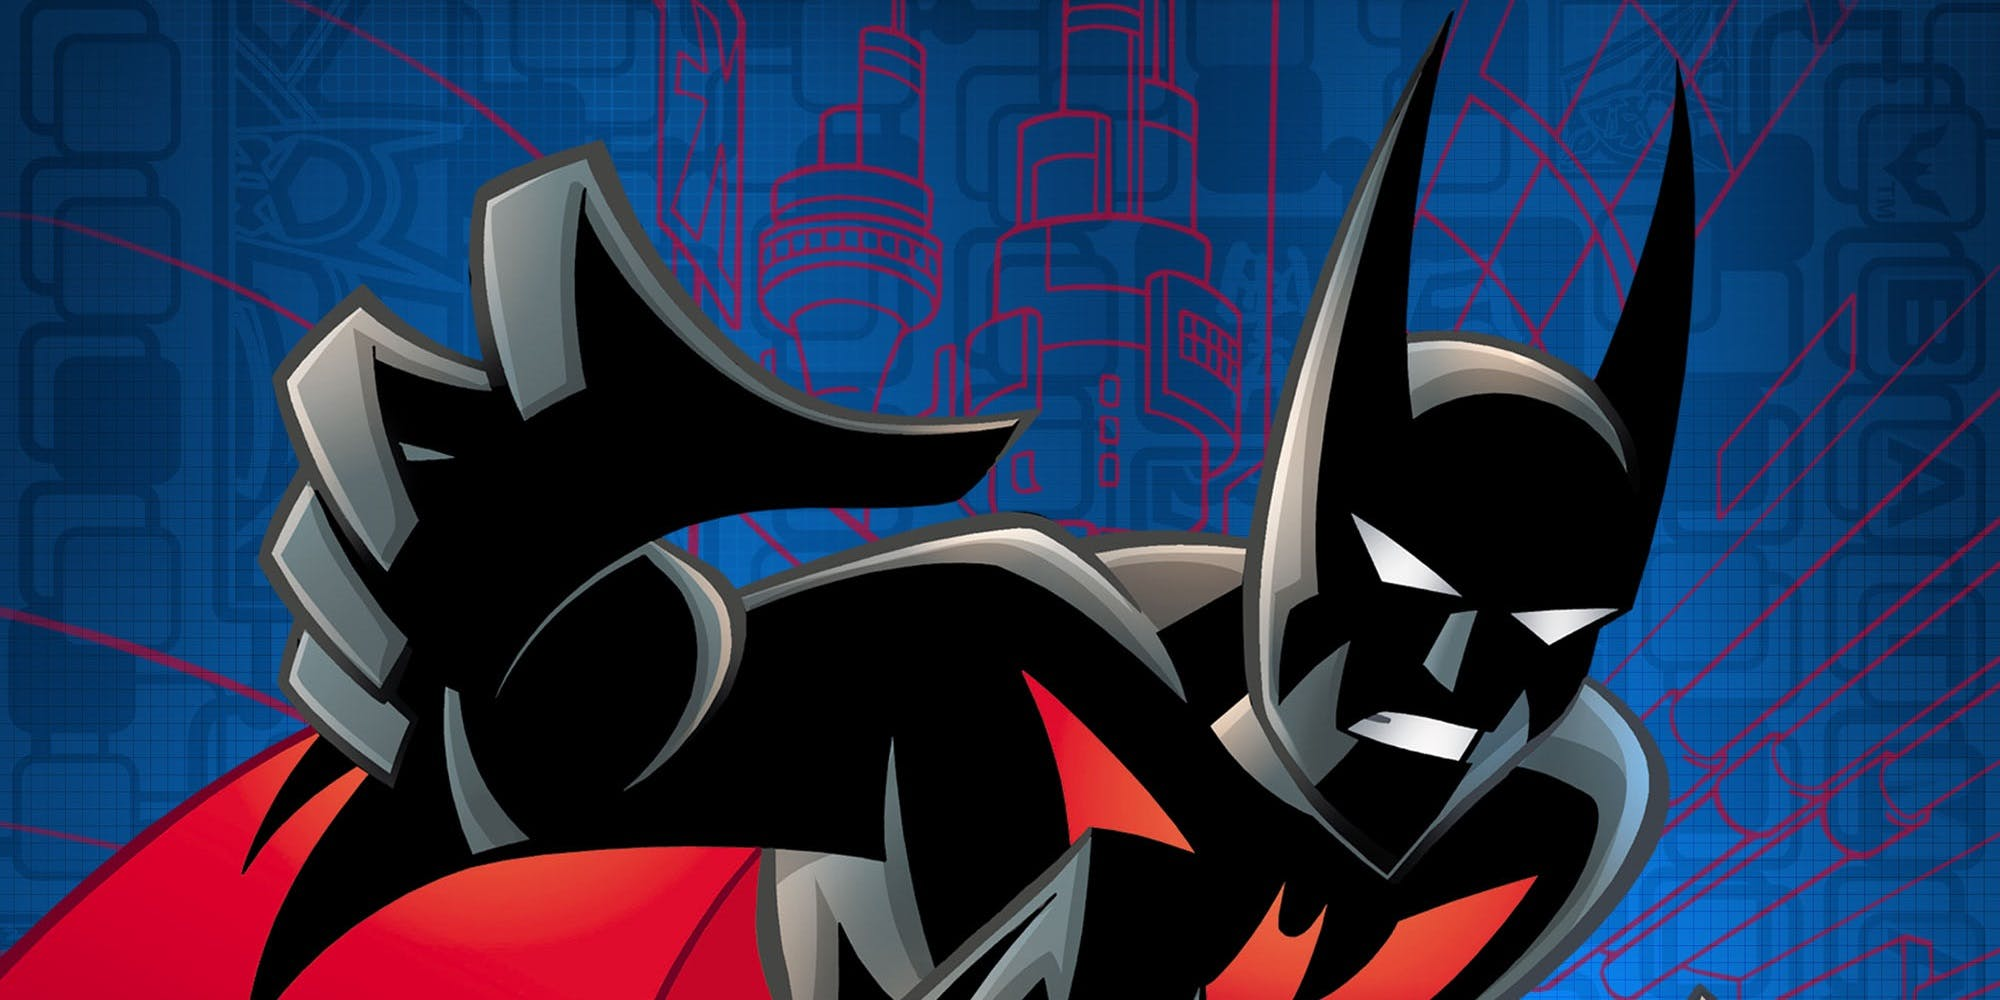 Bob Goodman talks about why Batman Beyond only lasted 3 seasons